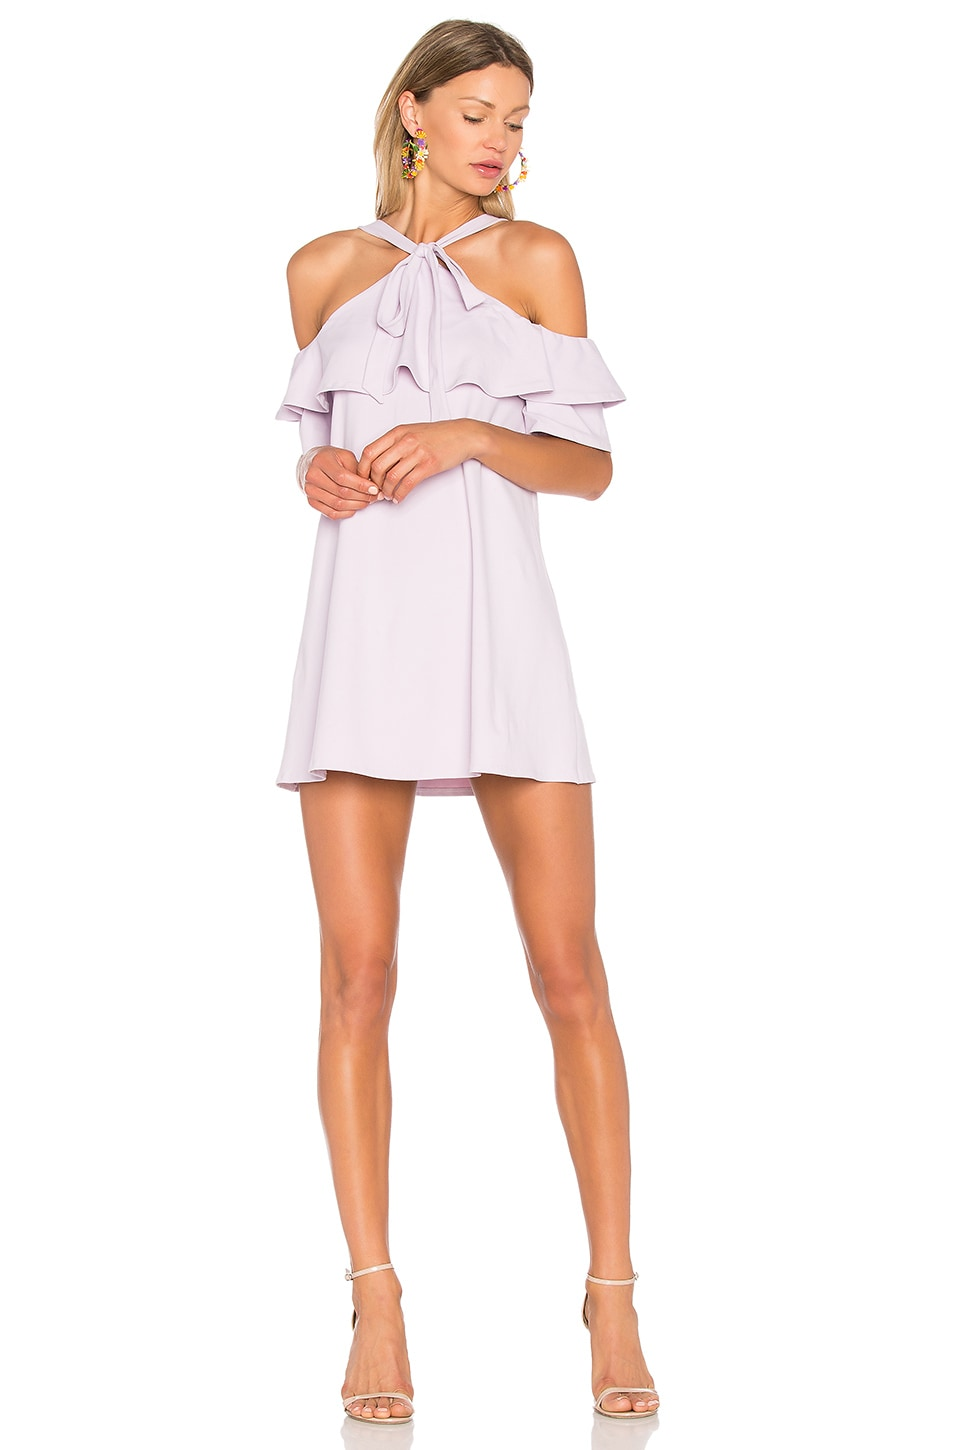 Susana Monaco Rowan Dress in Lilac